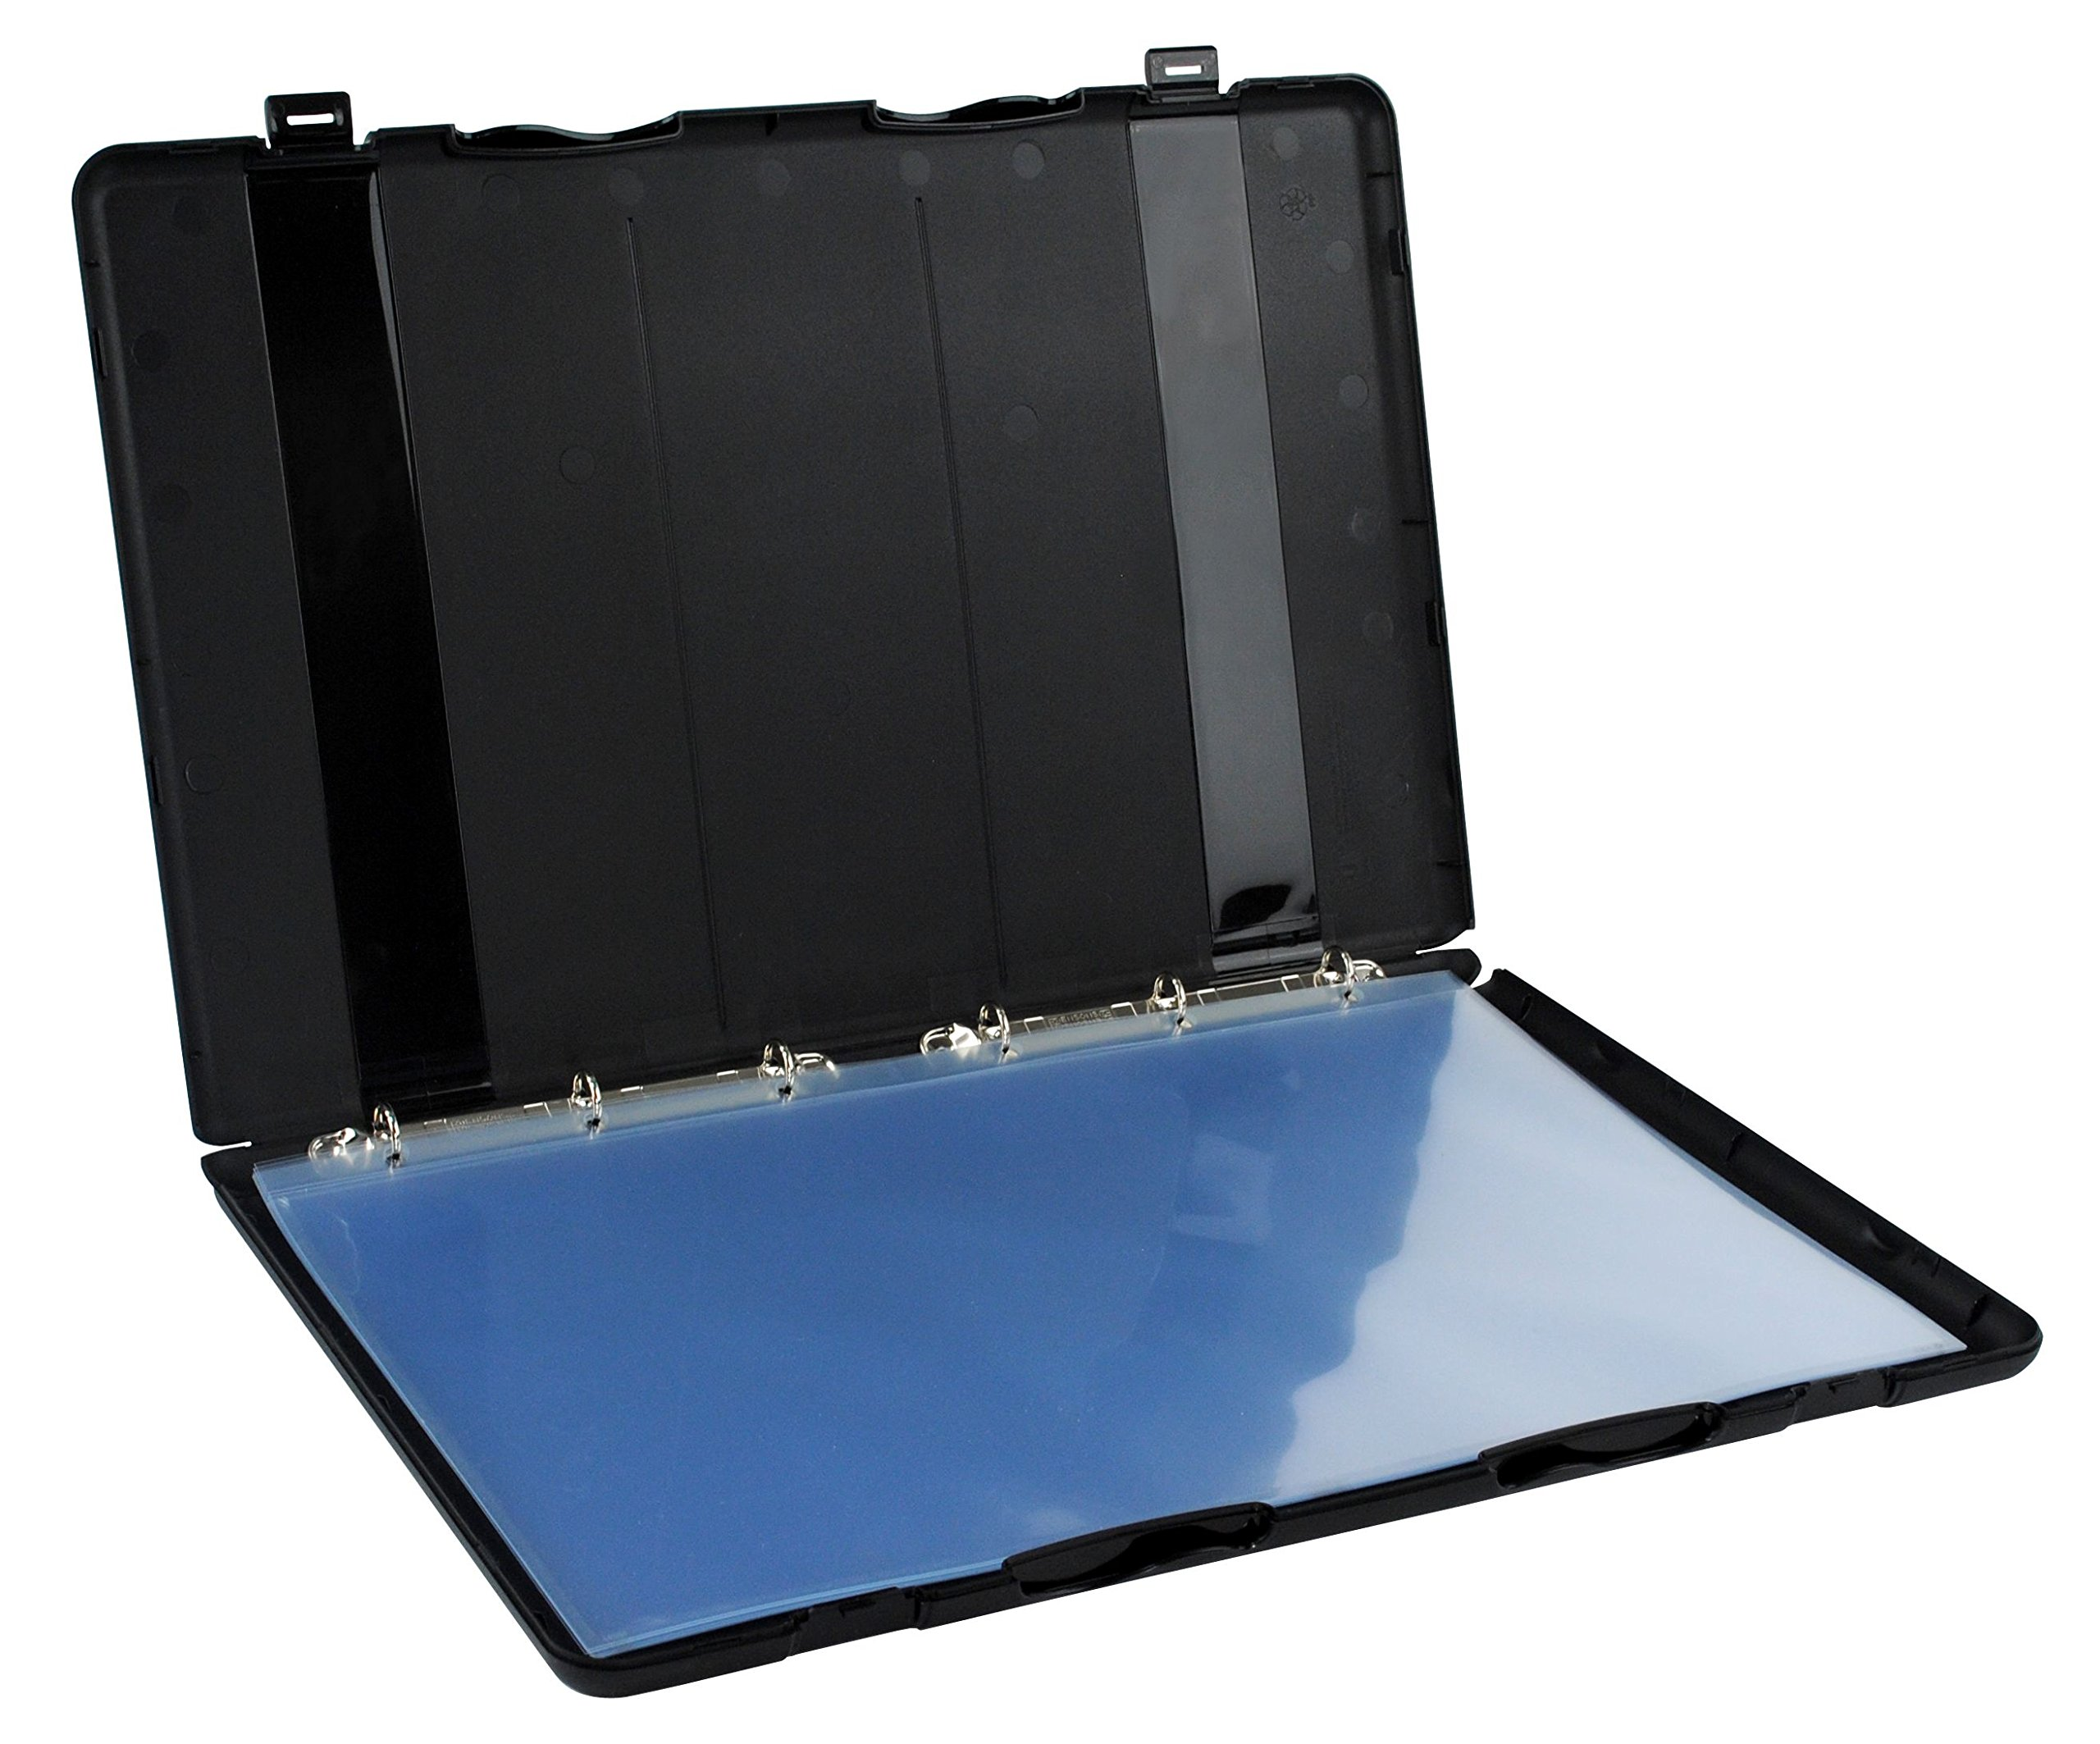 UniKeep Large Binder with Pages (11 x 17) - Black - Fully Enclosed Case Binder